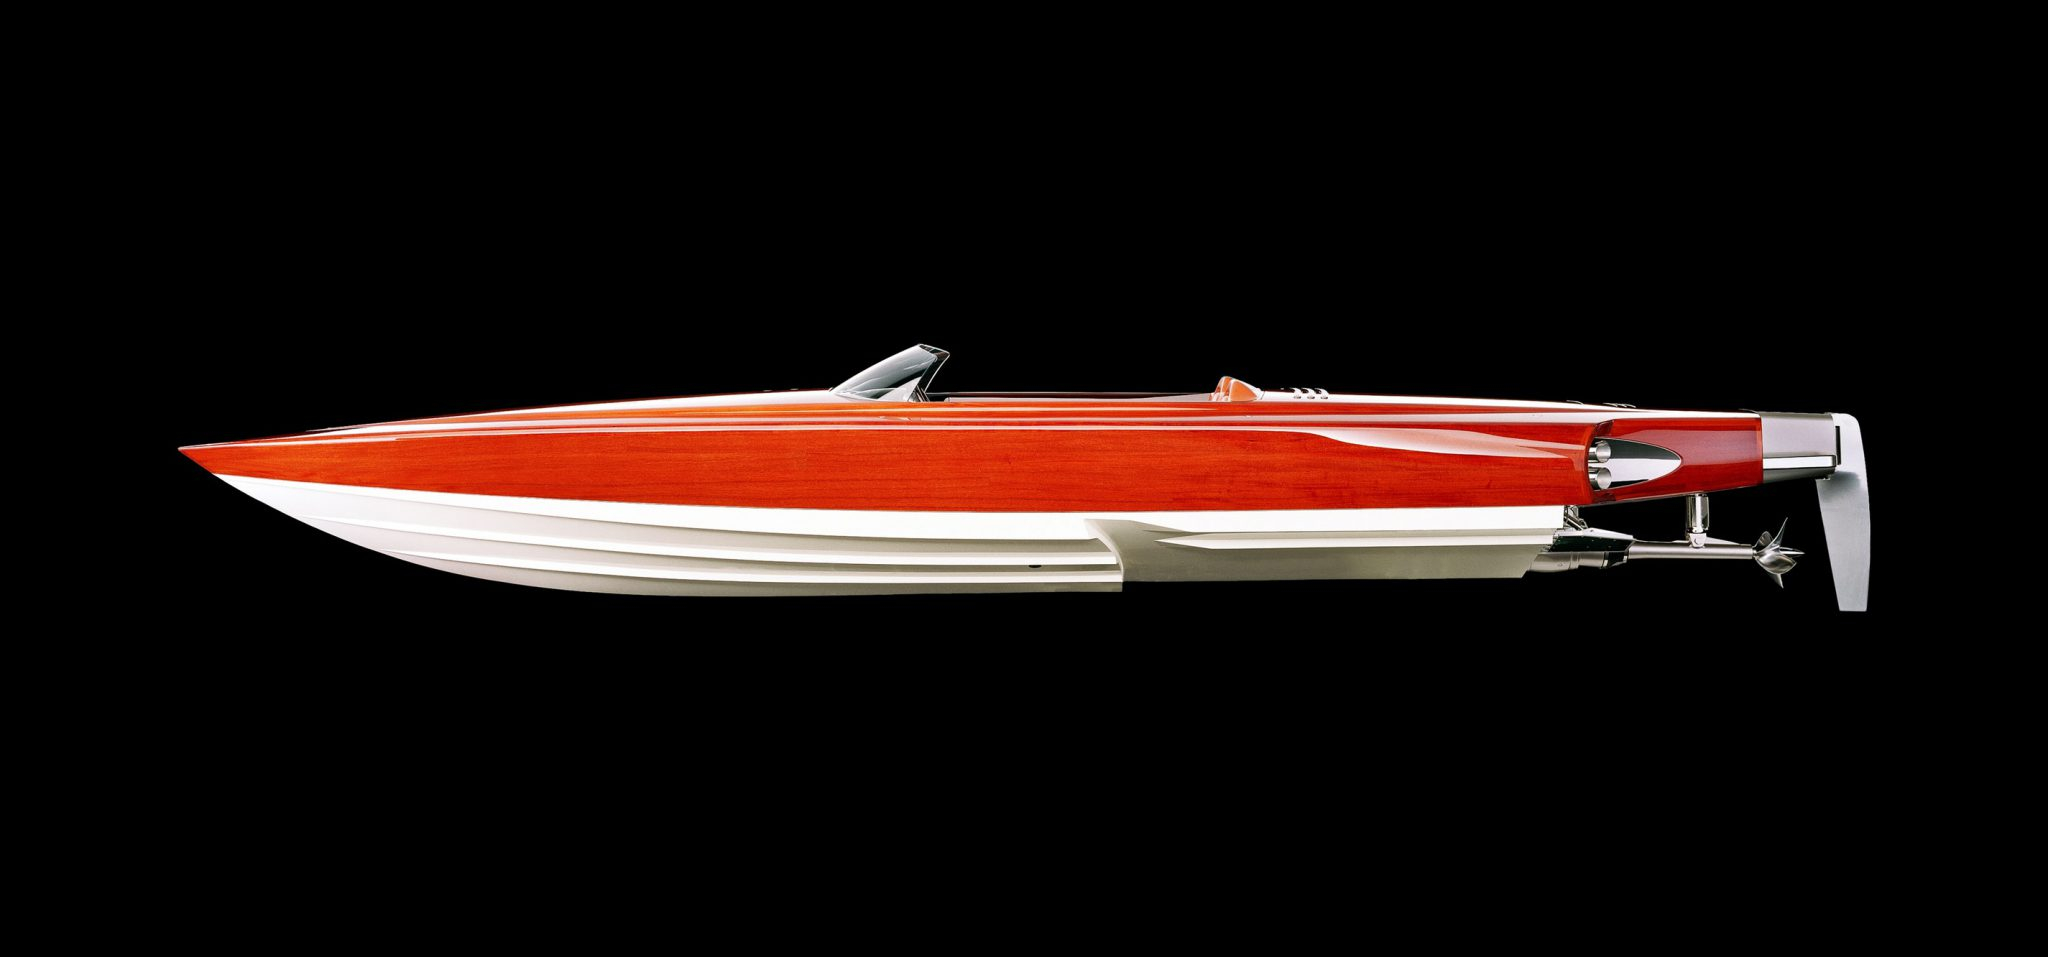 A 3d render of a boat.